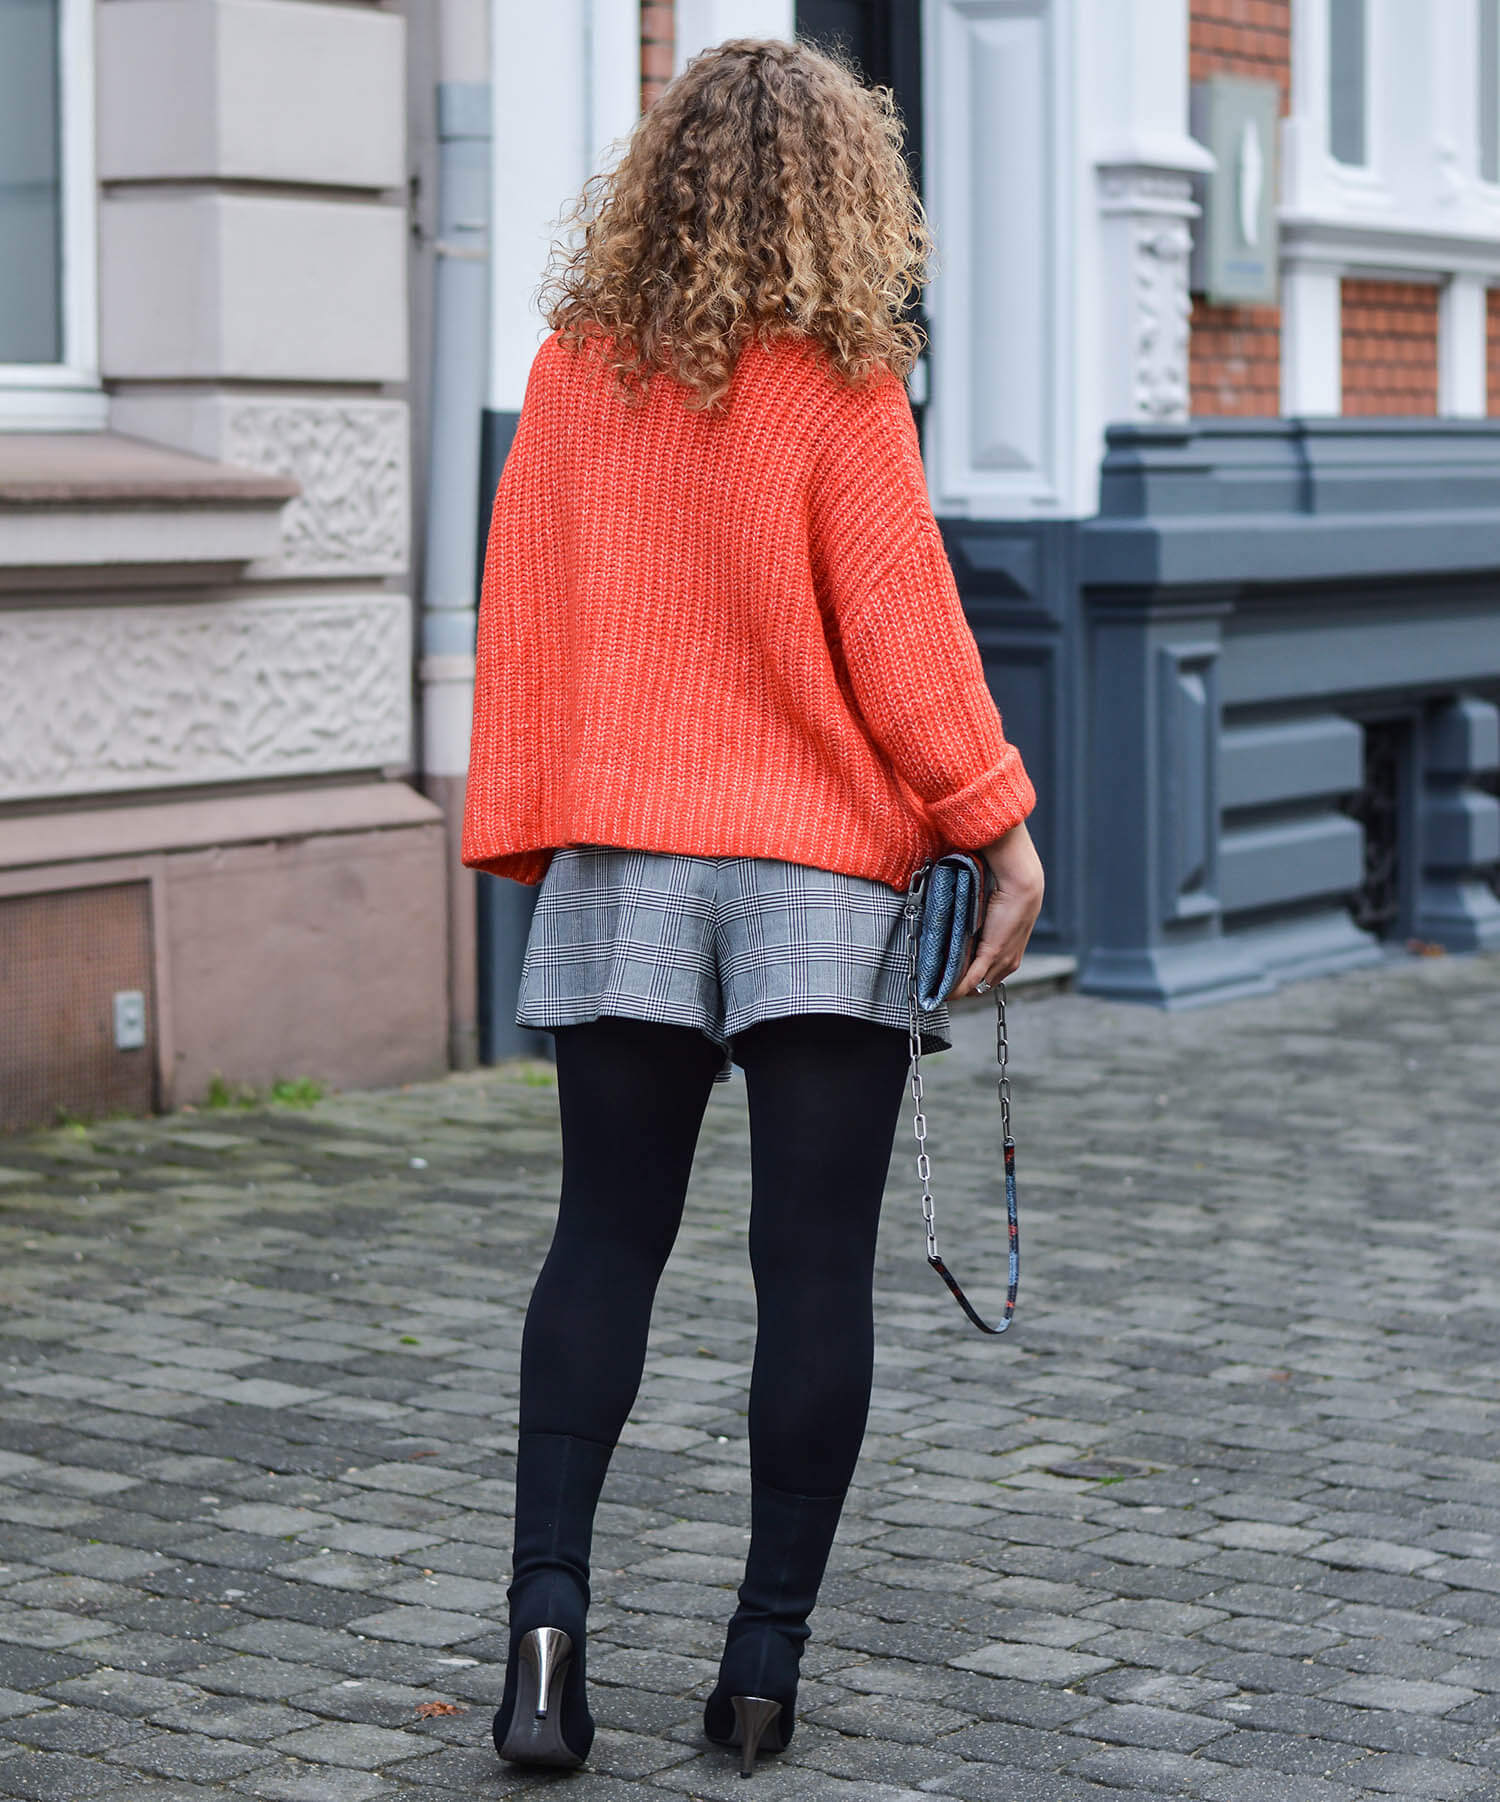 Kationette-fashionblogger-nrw-Outfit-Zara-Glencheck-Skort-Red-Wool-Sweater-and-Tamaris-Sock-Boots